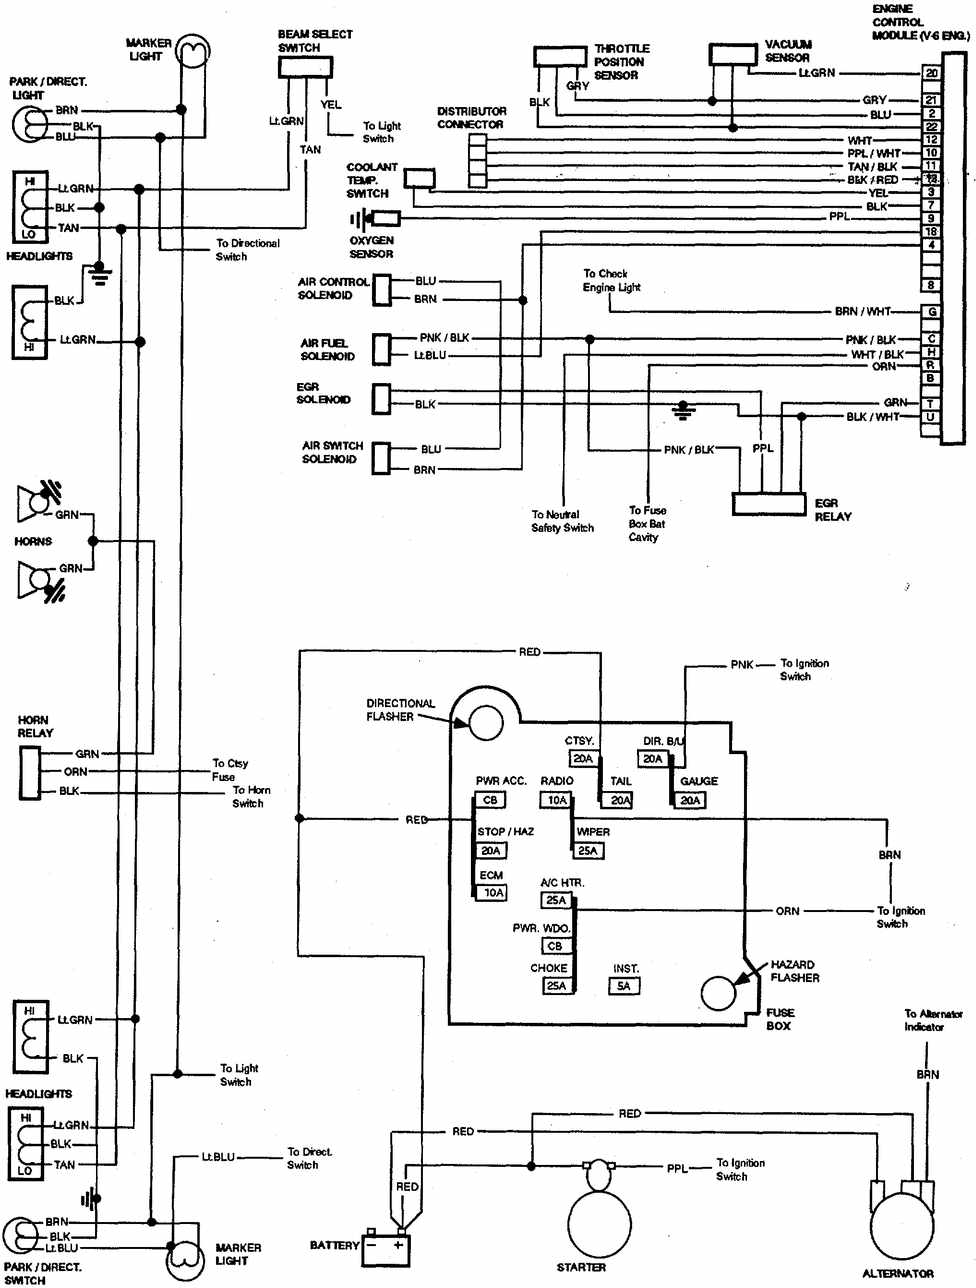 medium resolution of chevrolet v8 trucks 1981 1987 electrical wiring diagram 1977 chevy truck wiring diagram 1986 chevy truck